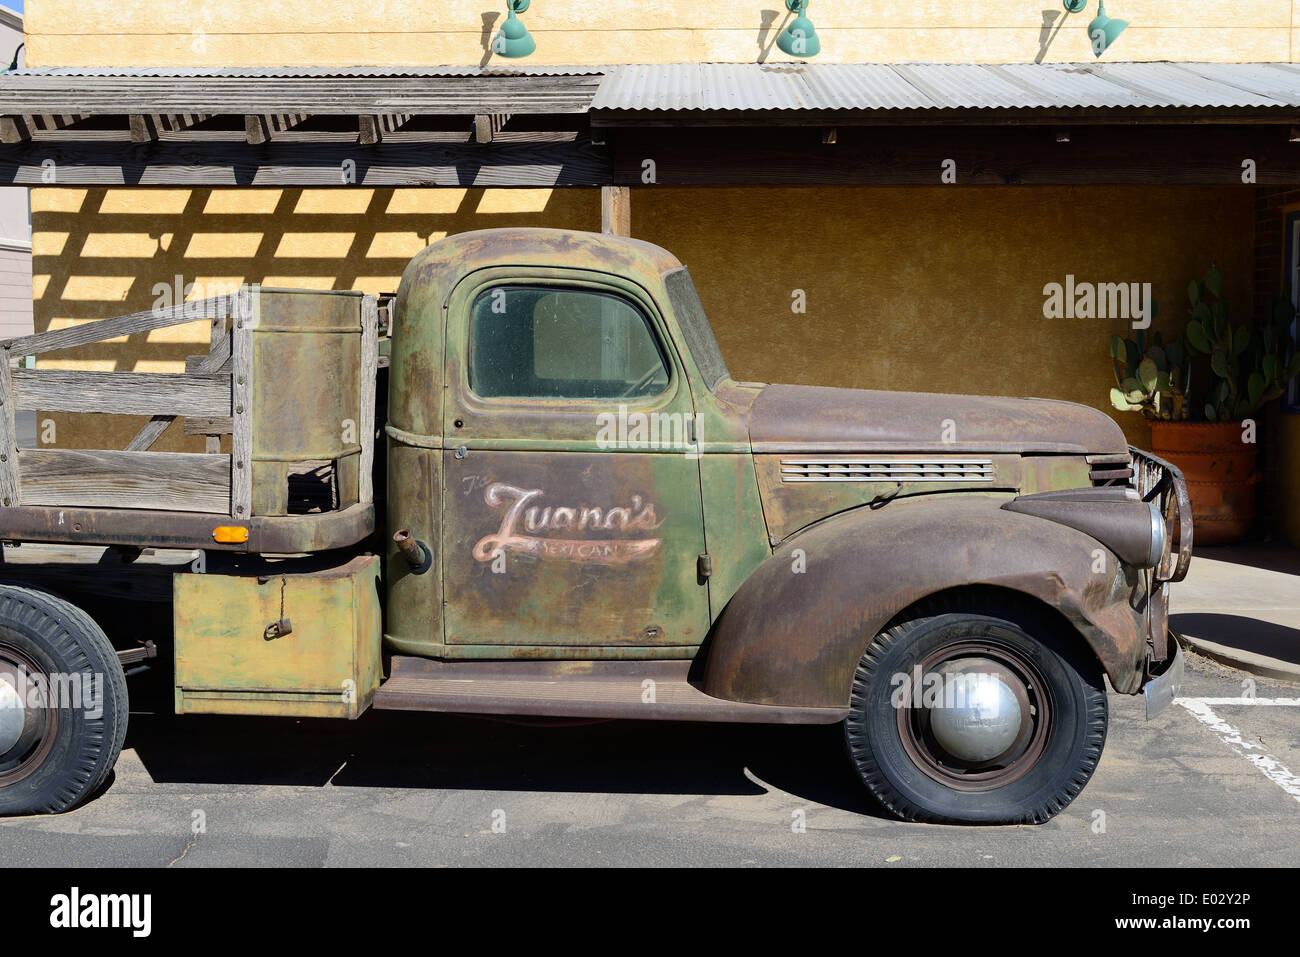 Vintage Chevrolet American flatbed truck Stock Photo: 68906622 - Alamy